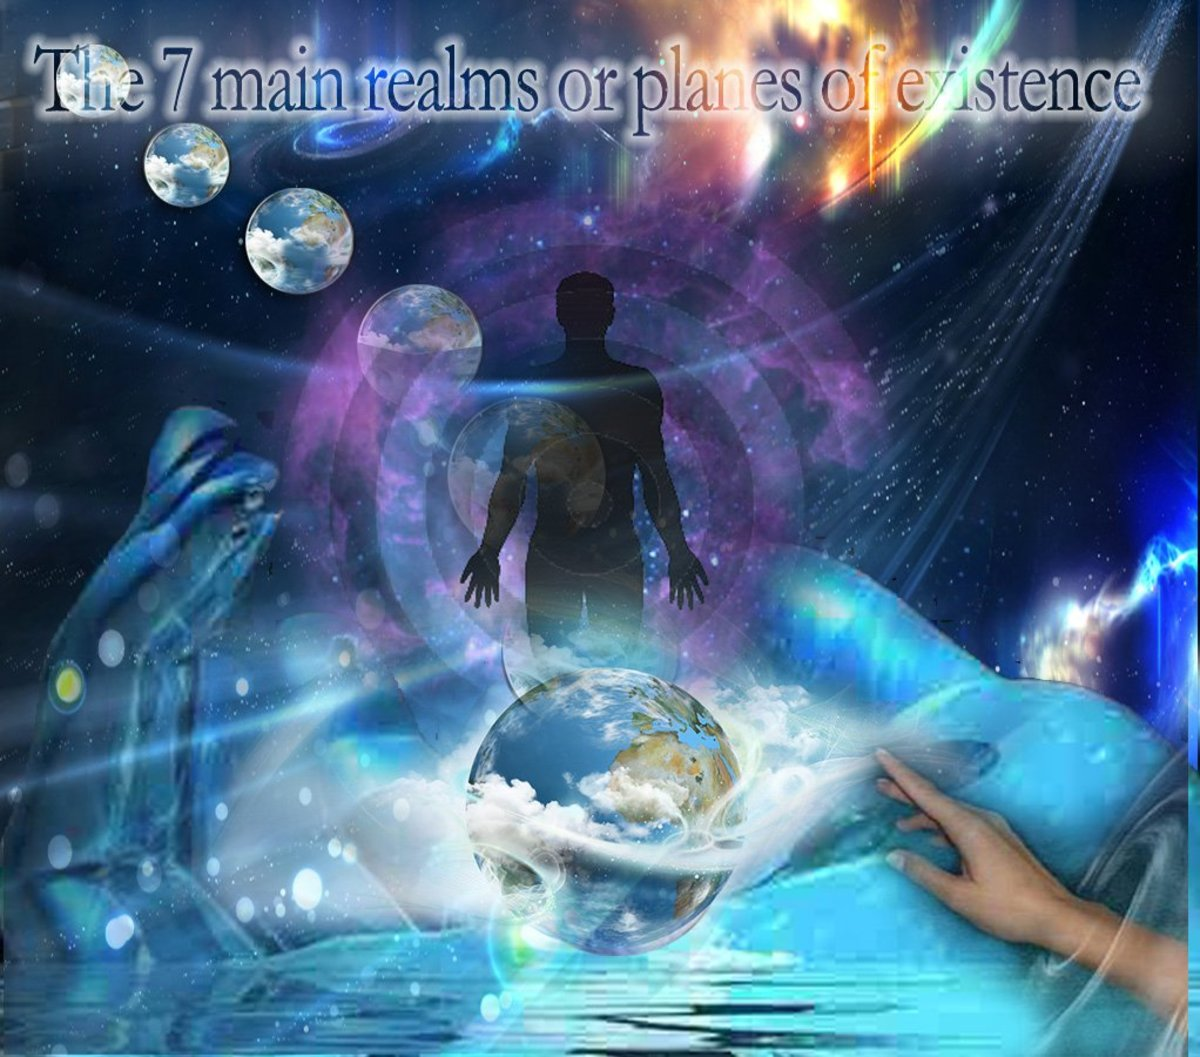 The Seven Realms of Existence